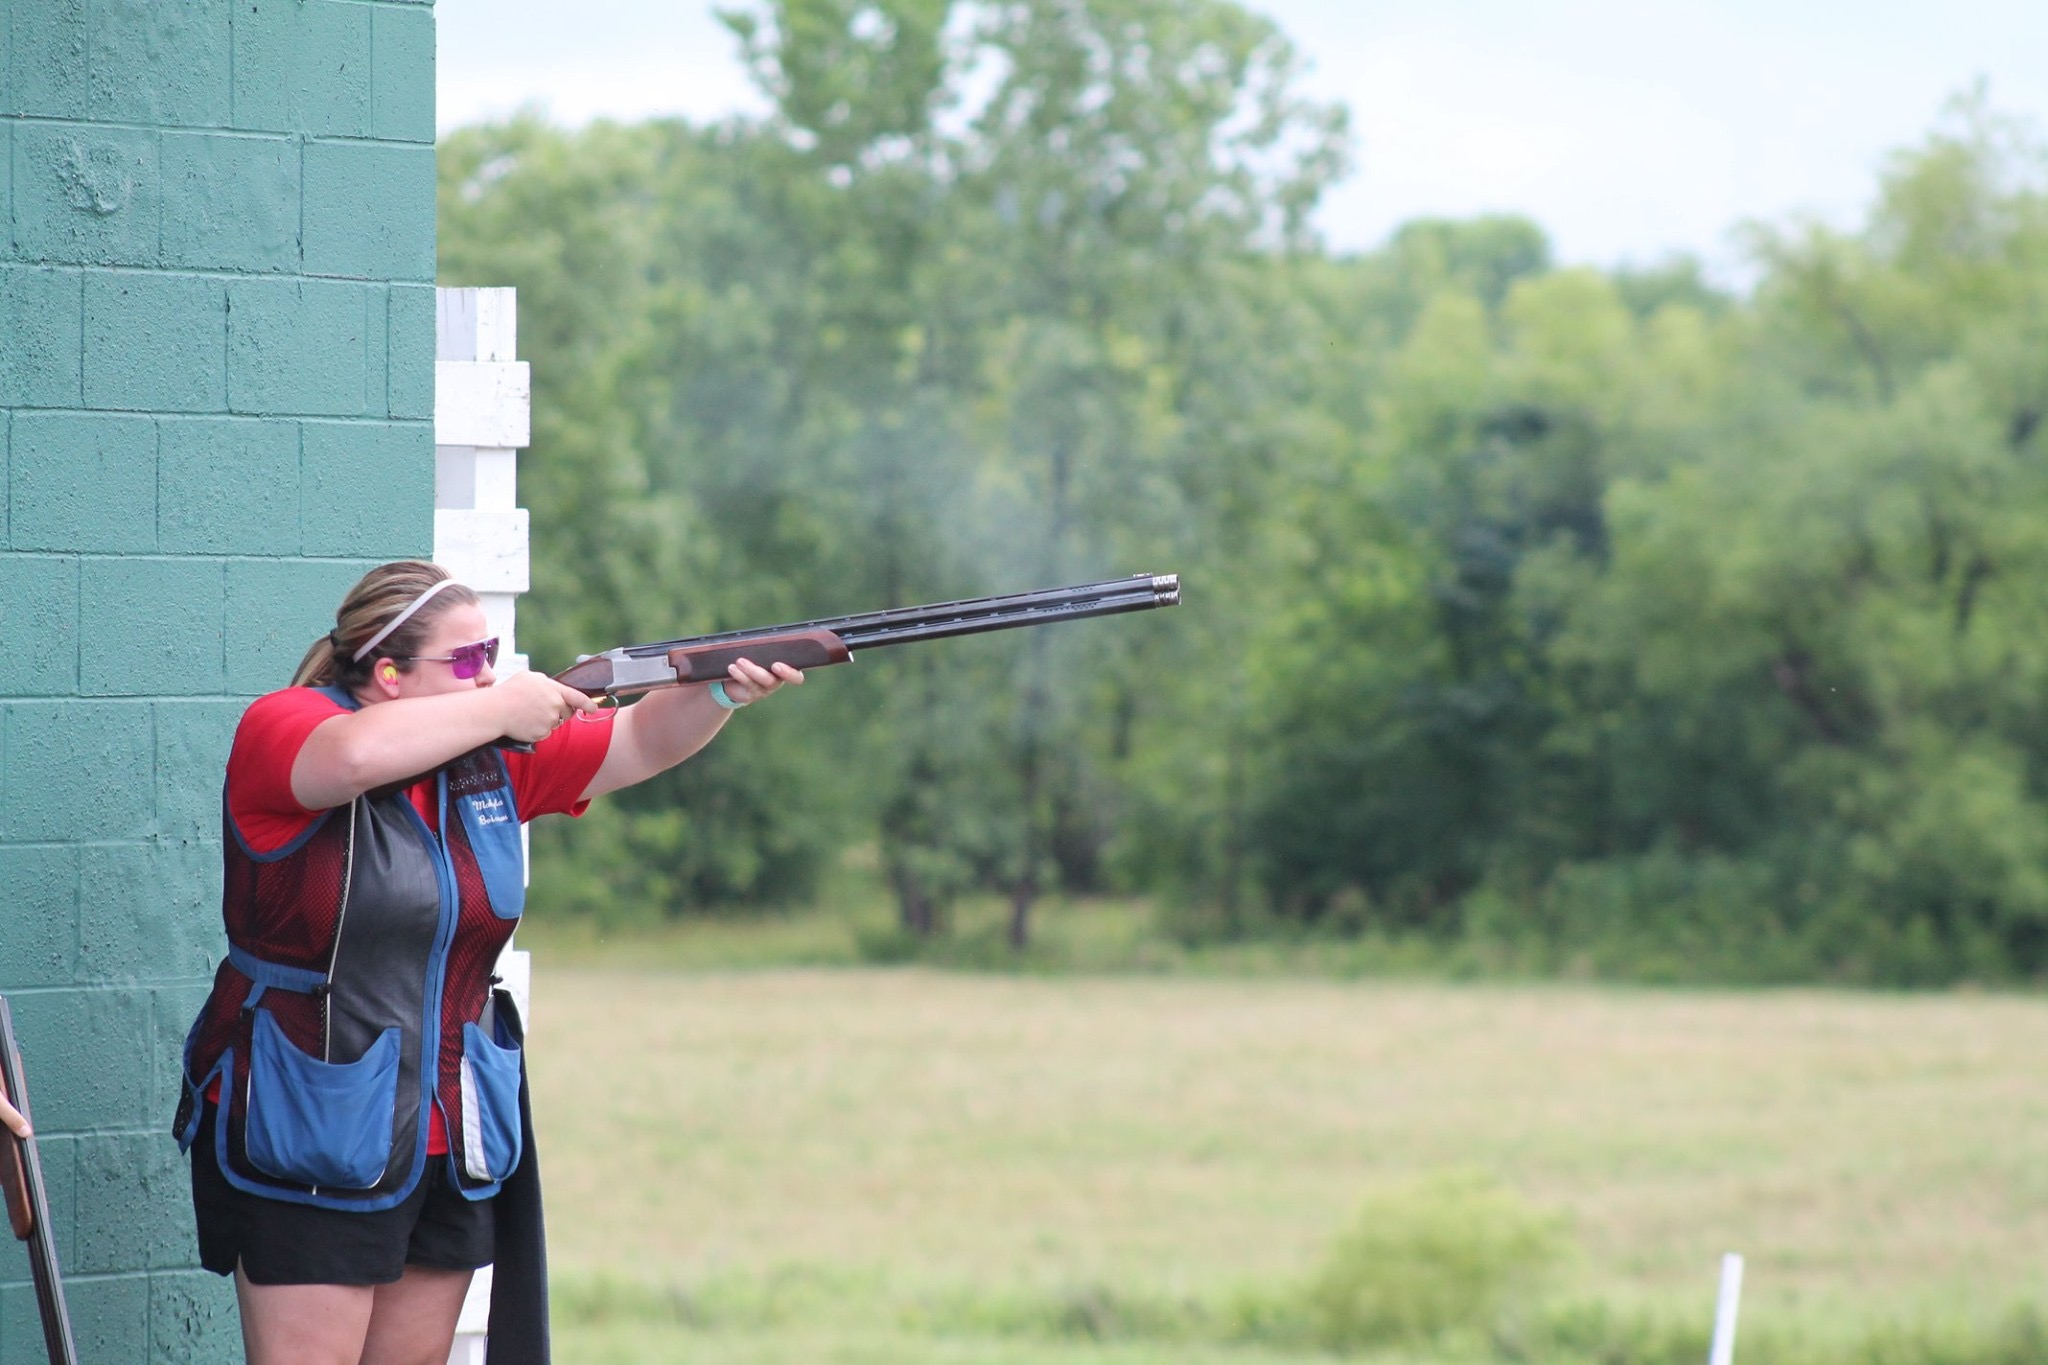 Makayla Boisseau competes at clay target shooting competition